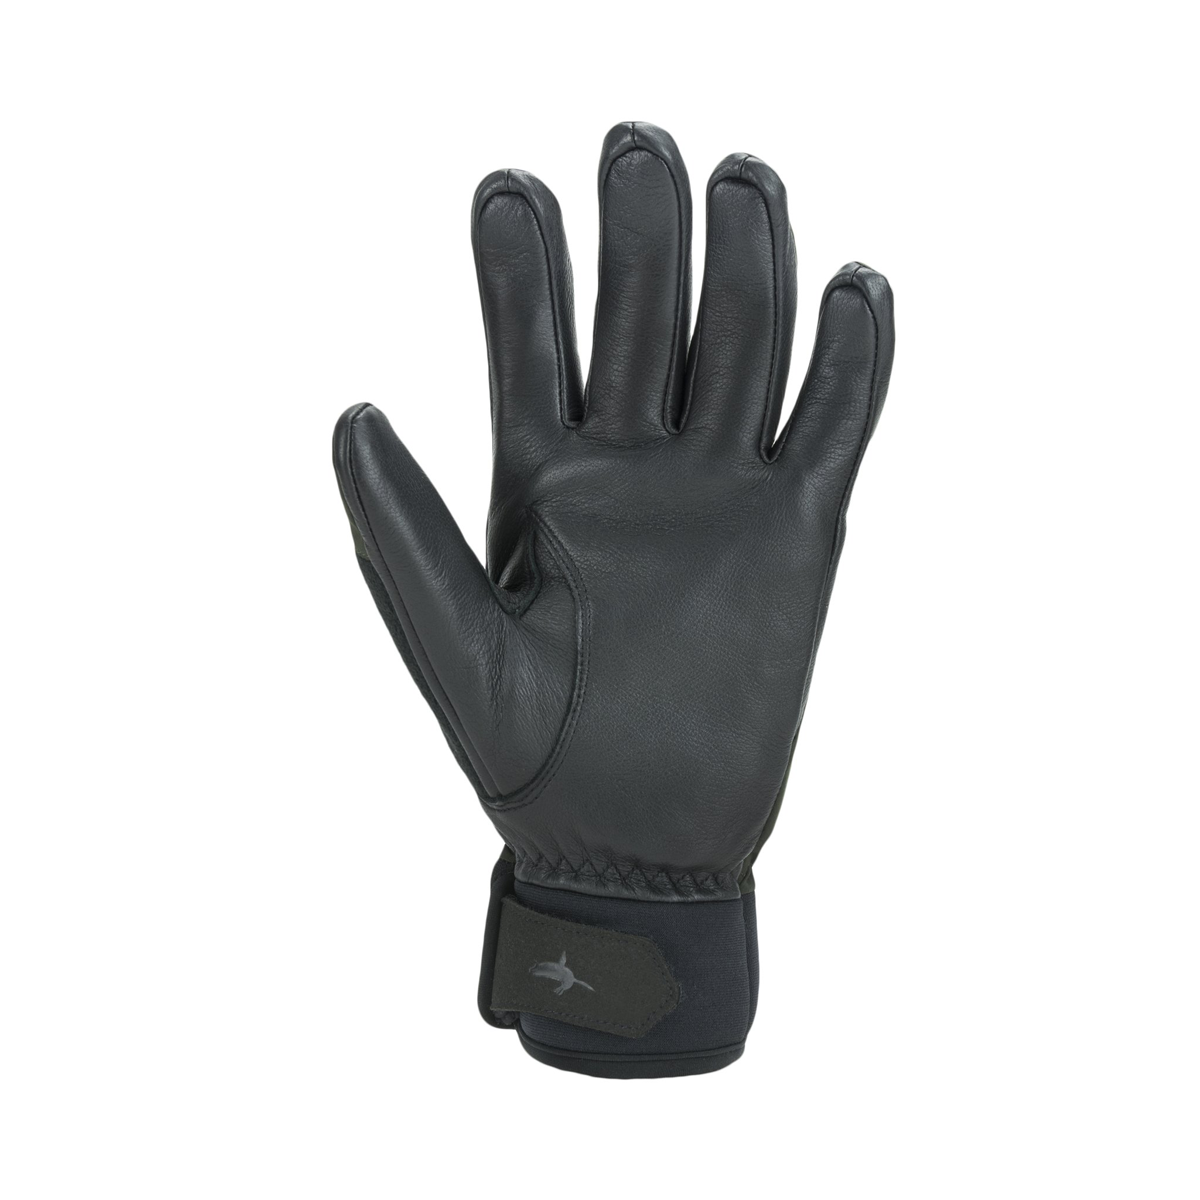 Sealskinz Waterproof All Weather Hunting Glove – Olive Green